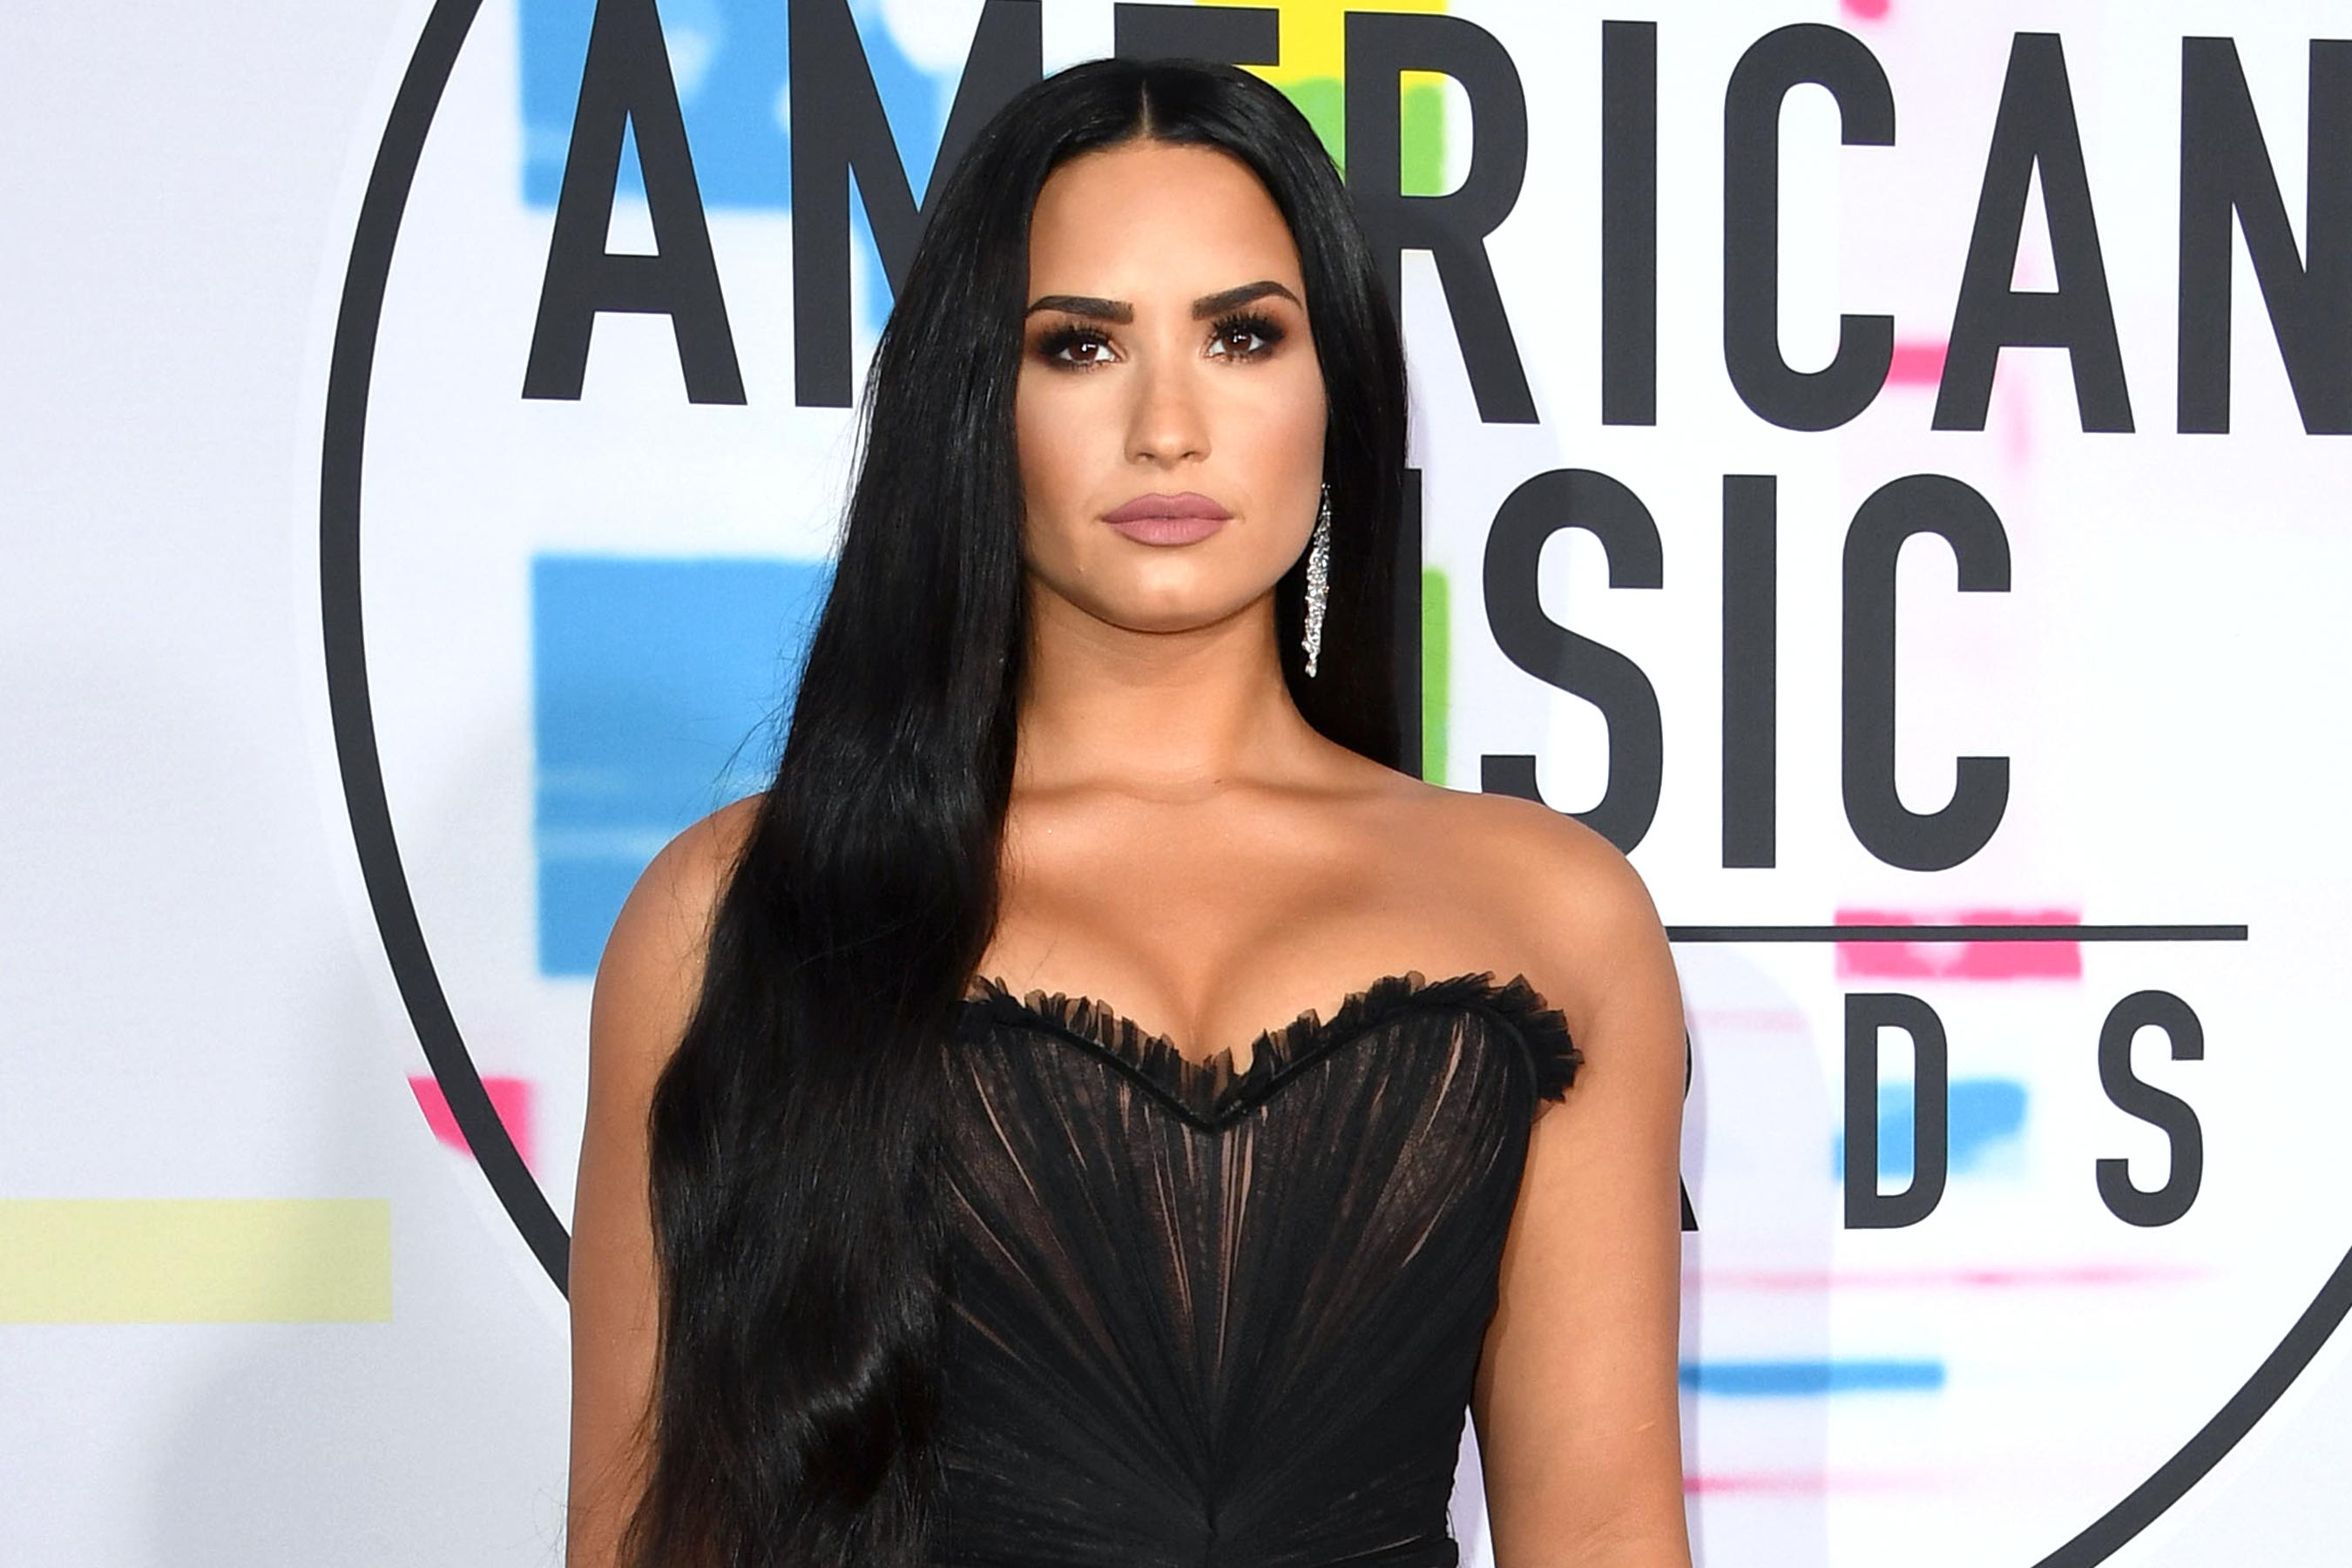 Pop star Demi Lovato vows to keep fighting addiction